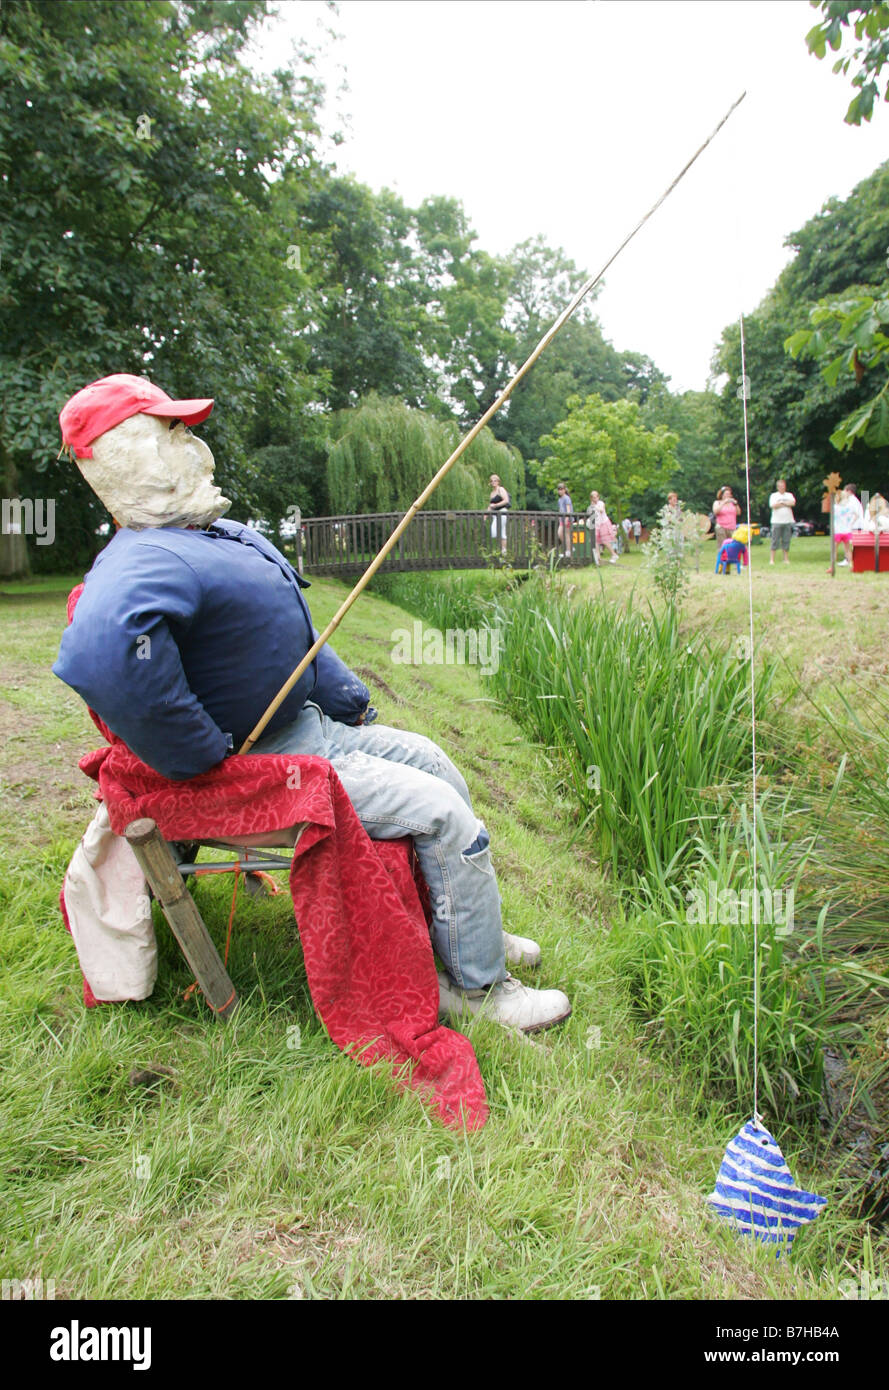 MUSTON BECK ANGLING COMPETITIO MUSTON VILLAGE YORKSHIRE ANGLETERRE MUSTON SCARECROW FESTIVAL 2008 27 juillet 2008 Photo Stock